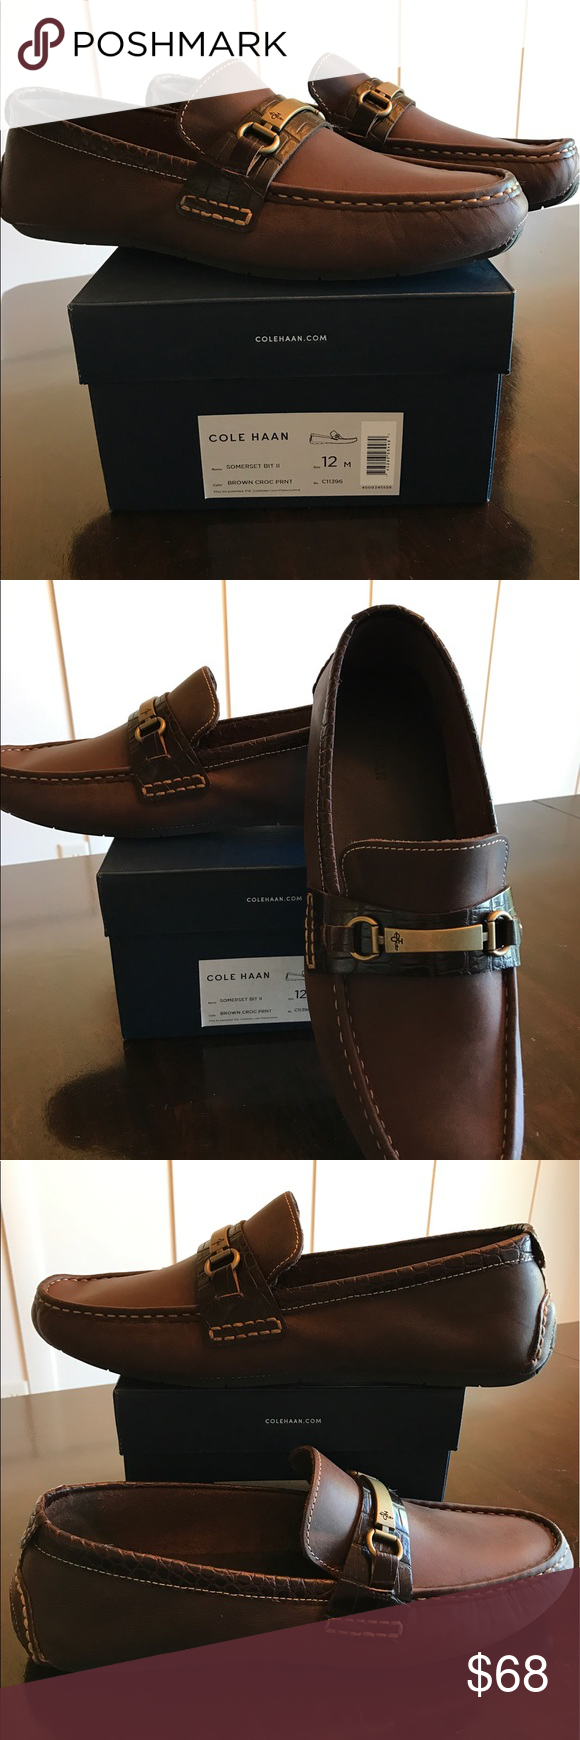 Cole Haan Somerset Venetian Bit Loafer Soft washed leather upper with croc print leather trim. Genuine hand sewn moccasin, leather outsole with driver-inspired rubber sole Cole Haan Shoes Loafers & Slip-Ons